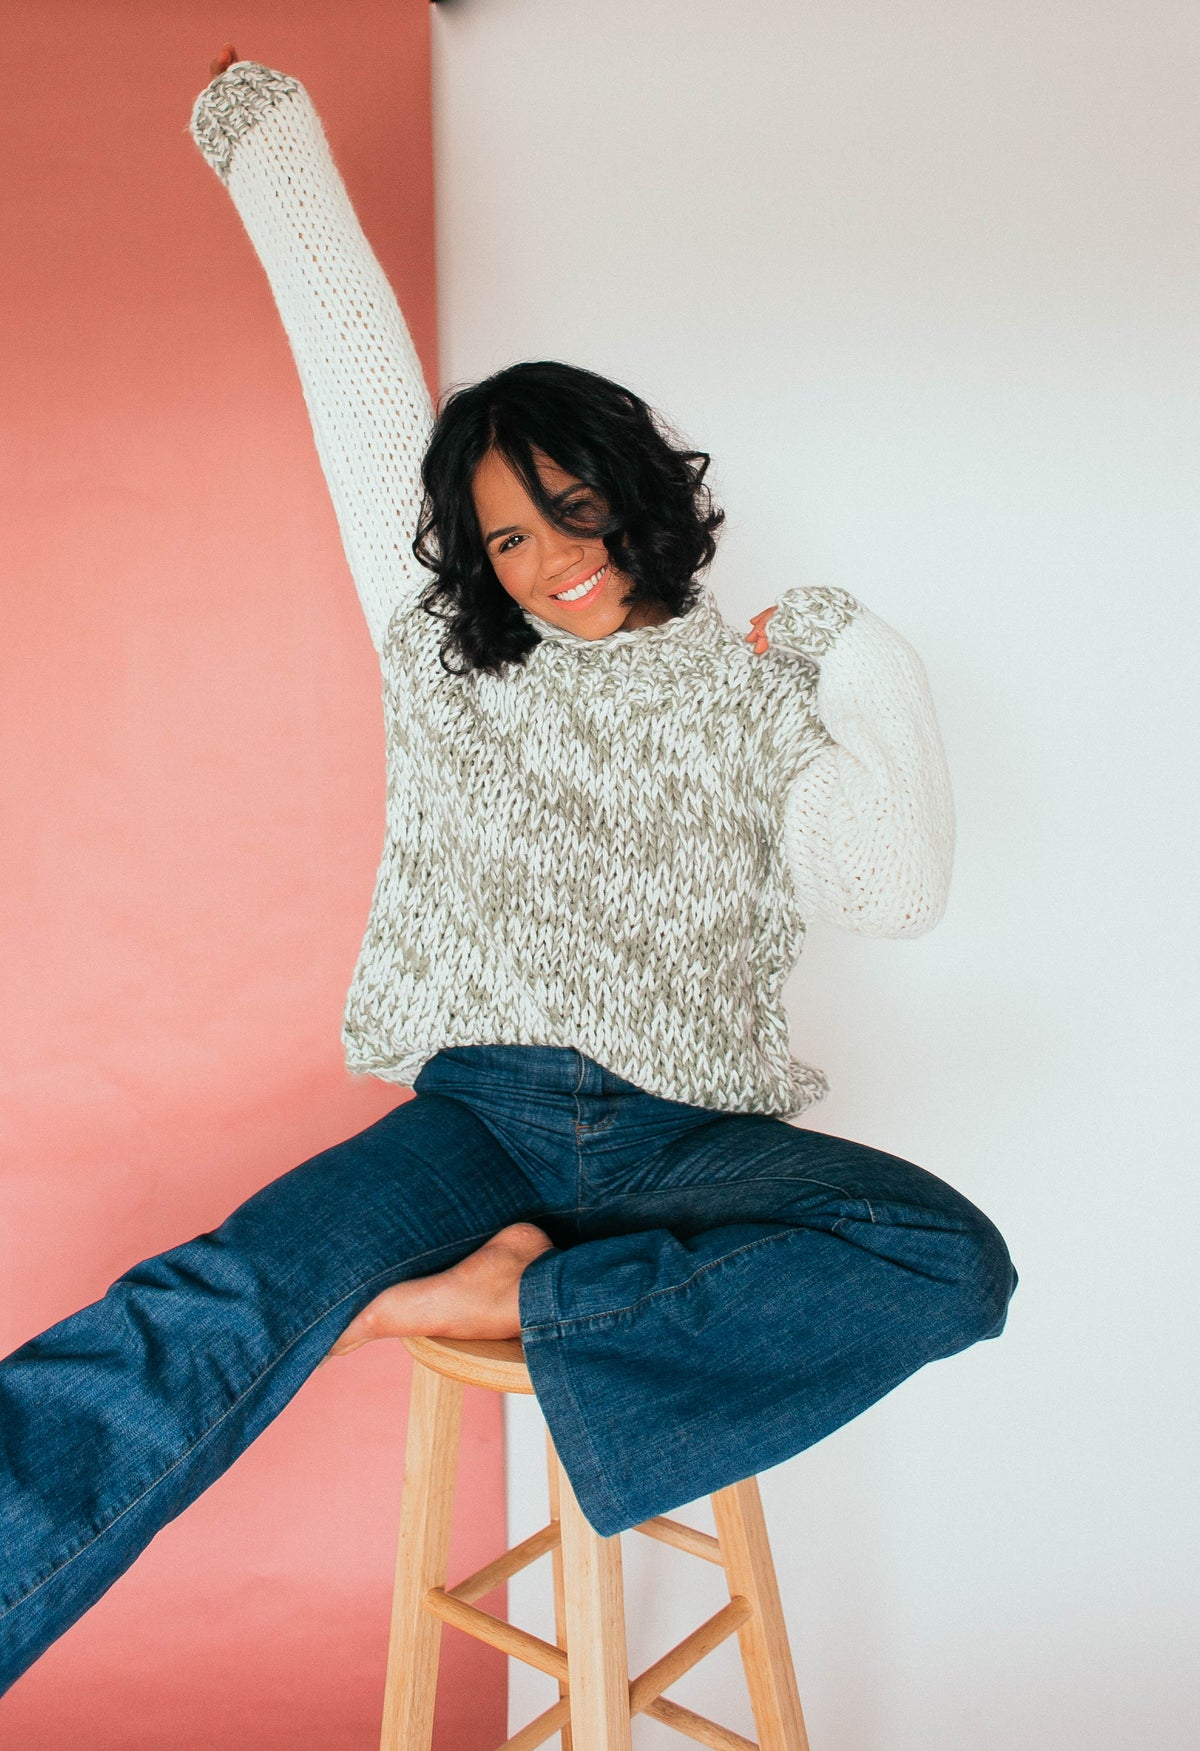 New Season Knit Sweater